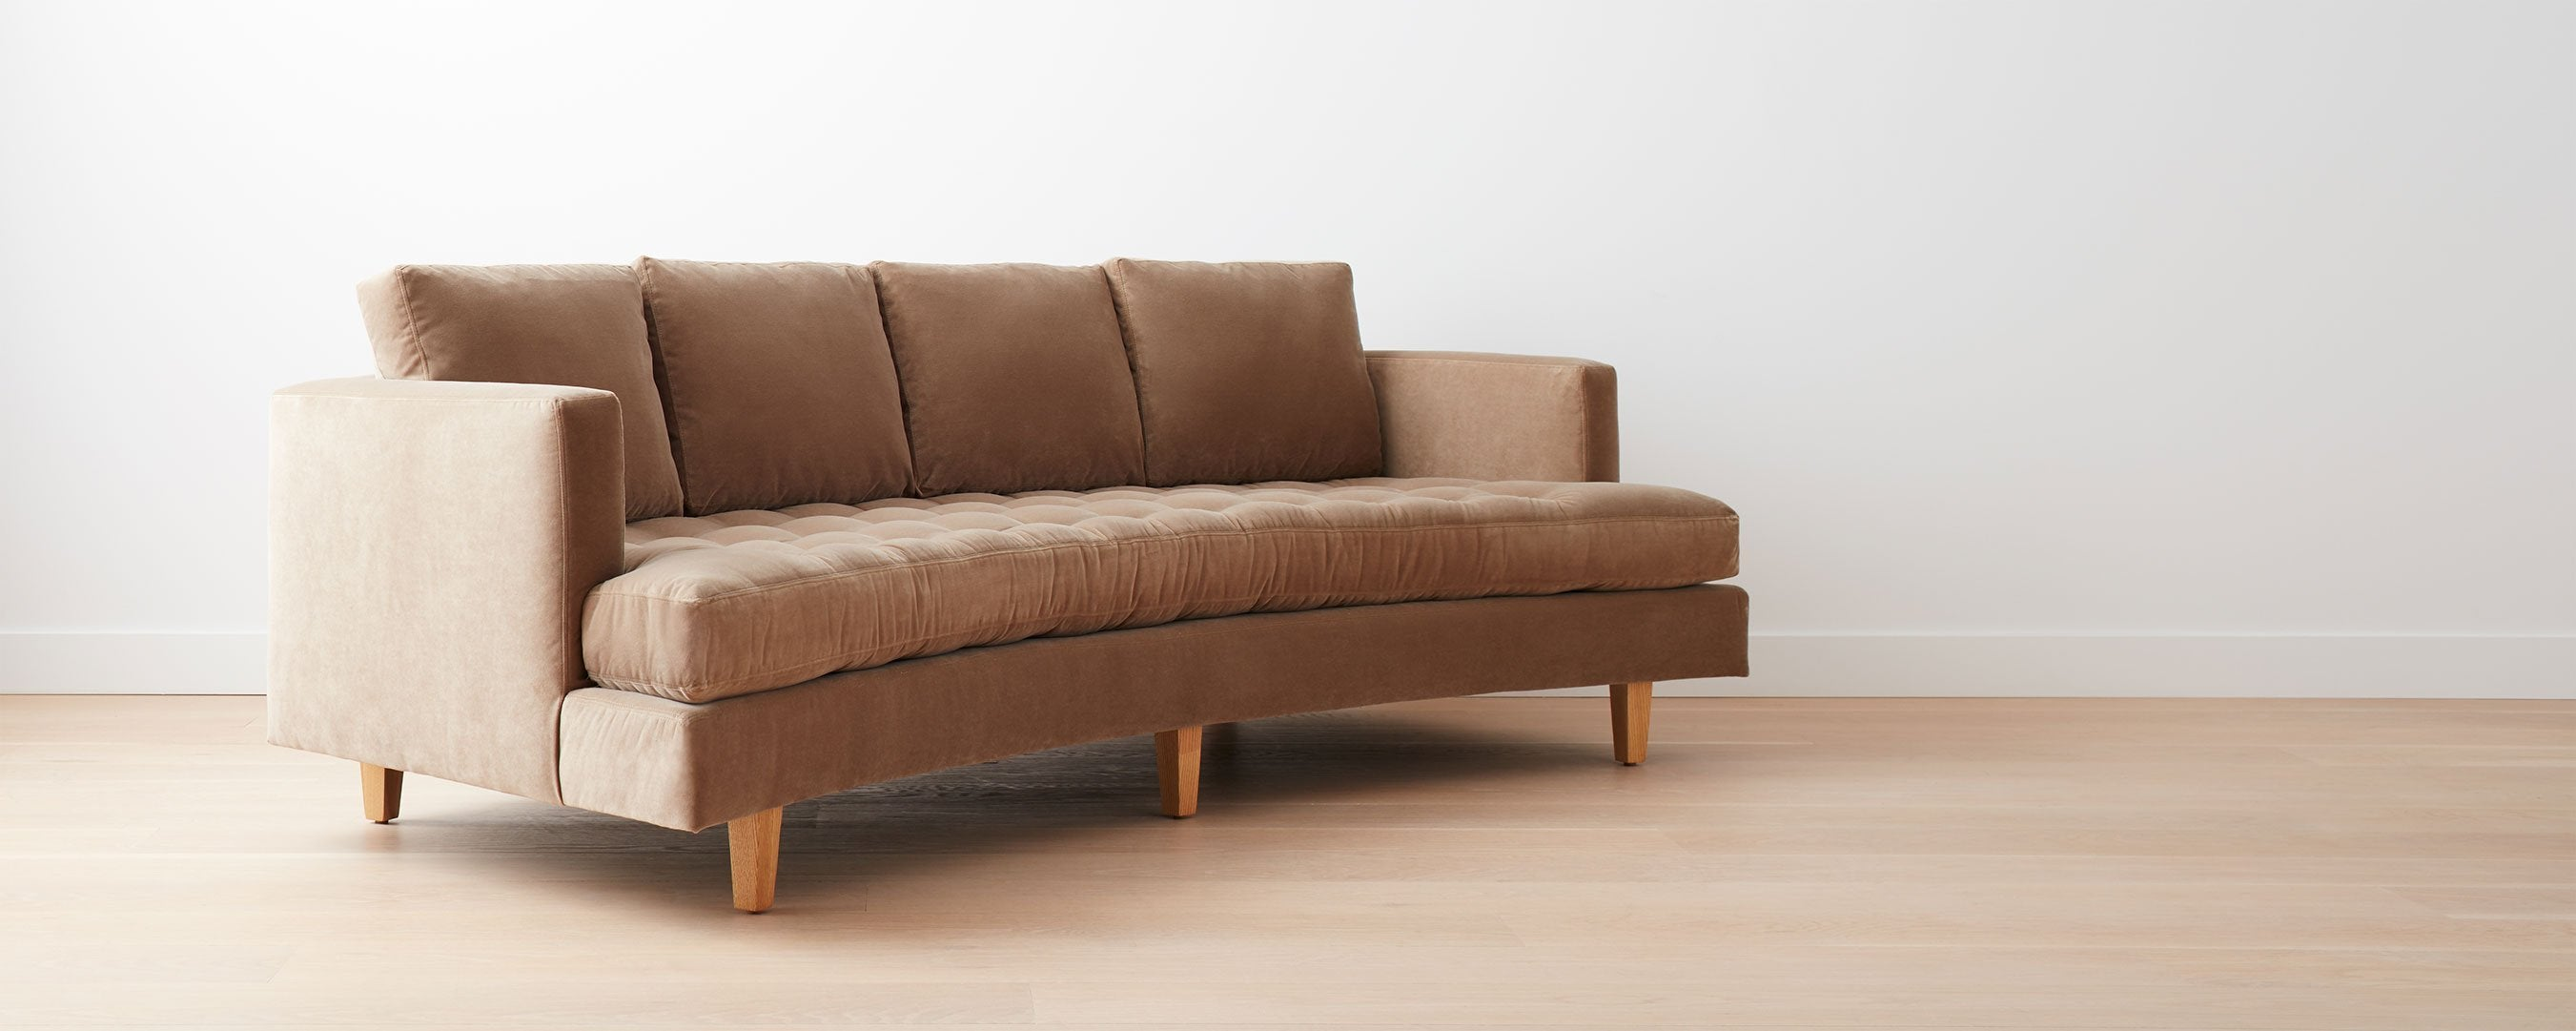 The Homenature Malibu Sofa